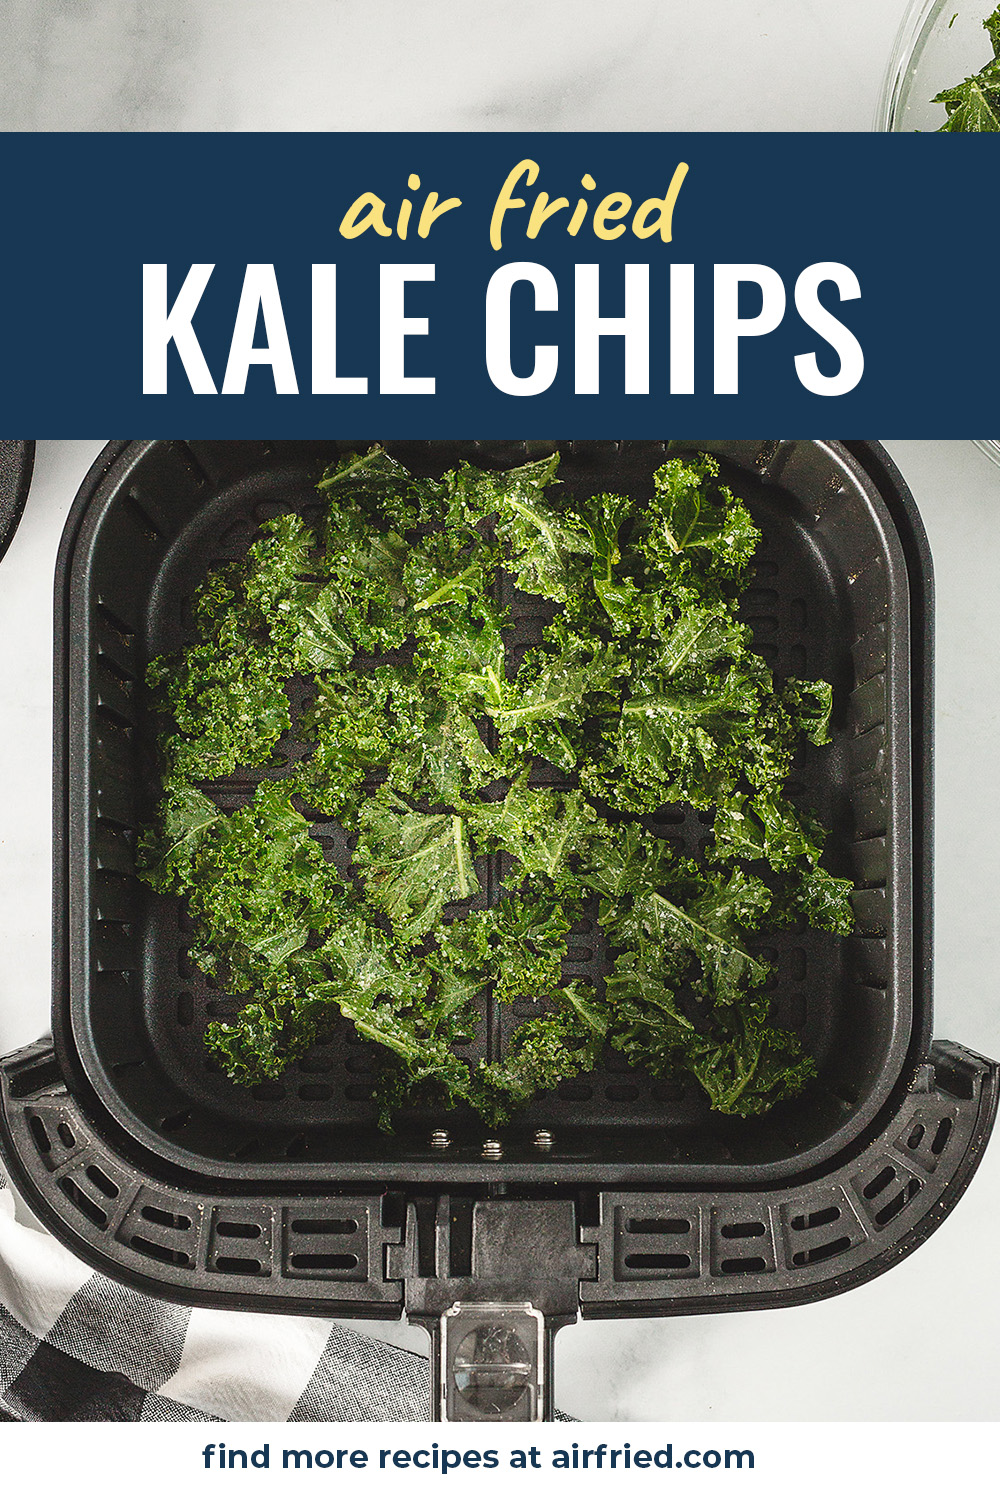 Kale is one of the healthiest food options and making them in an air fryer is my favorite way to eat it! #healthyrecipes #airfryer #snacks